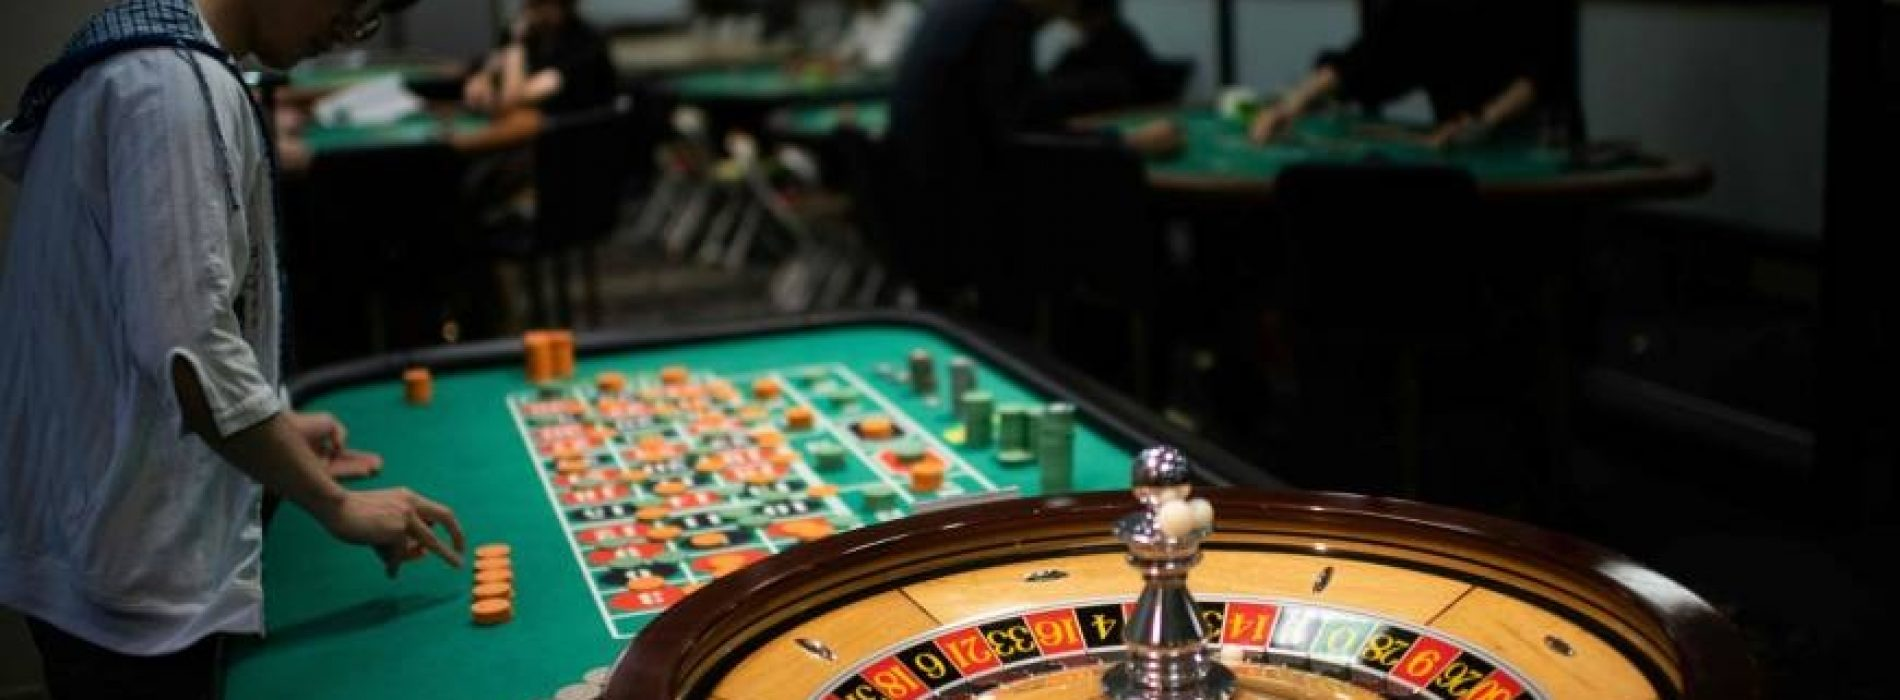 Benefits of Playing Online Versus Traditional Casinos